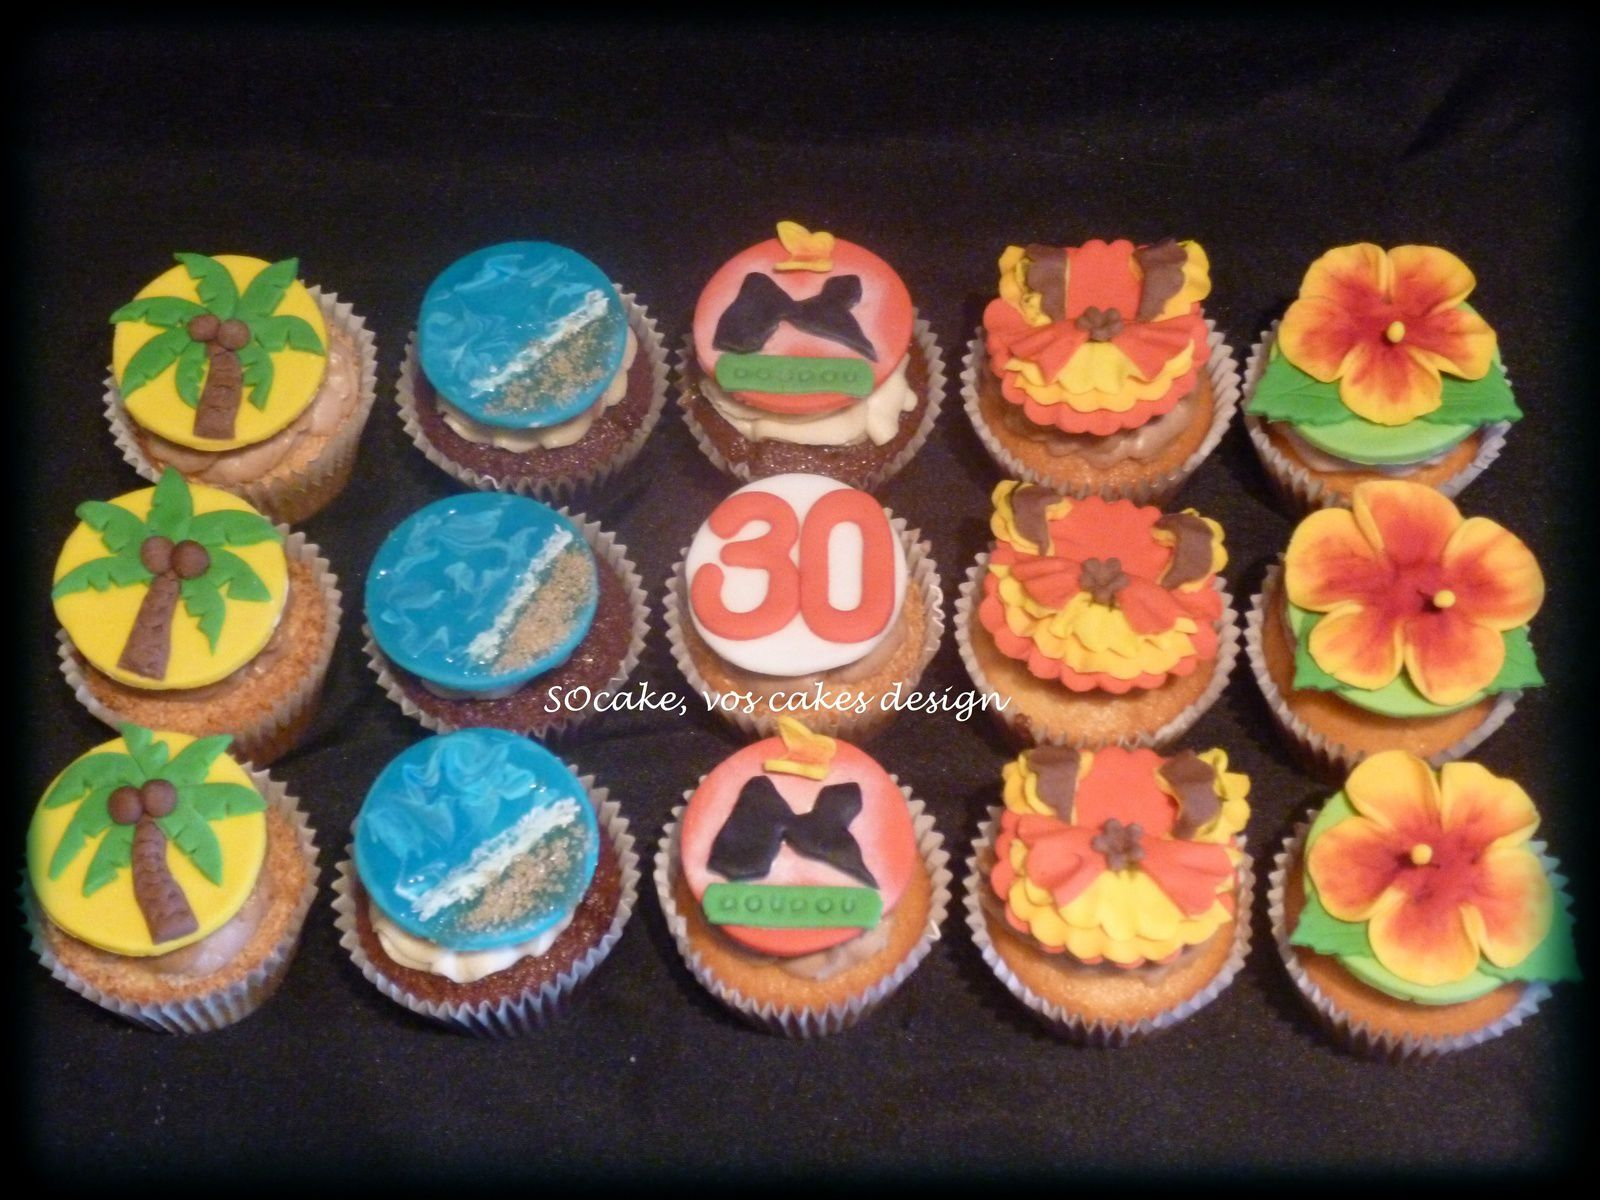 Cake Design Guadeloupe : Cupcakes Guadeloupe - SOcake ... Vos cakes design